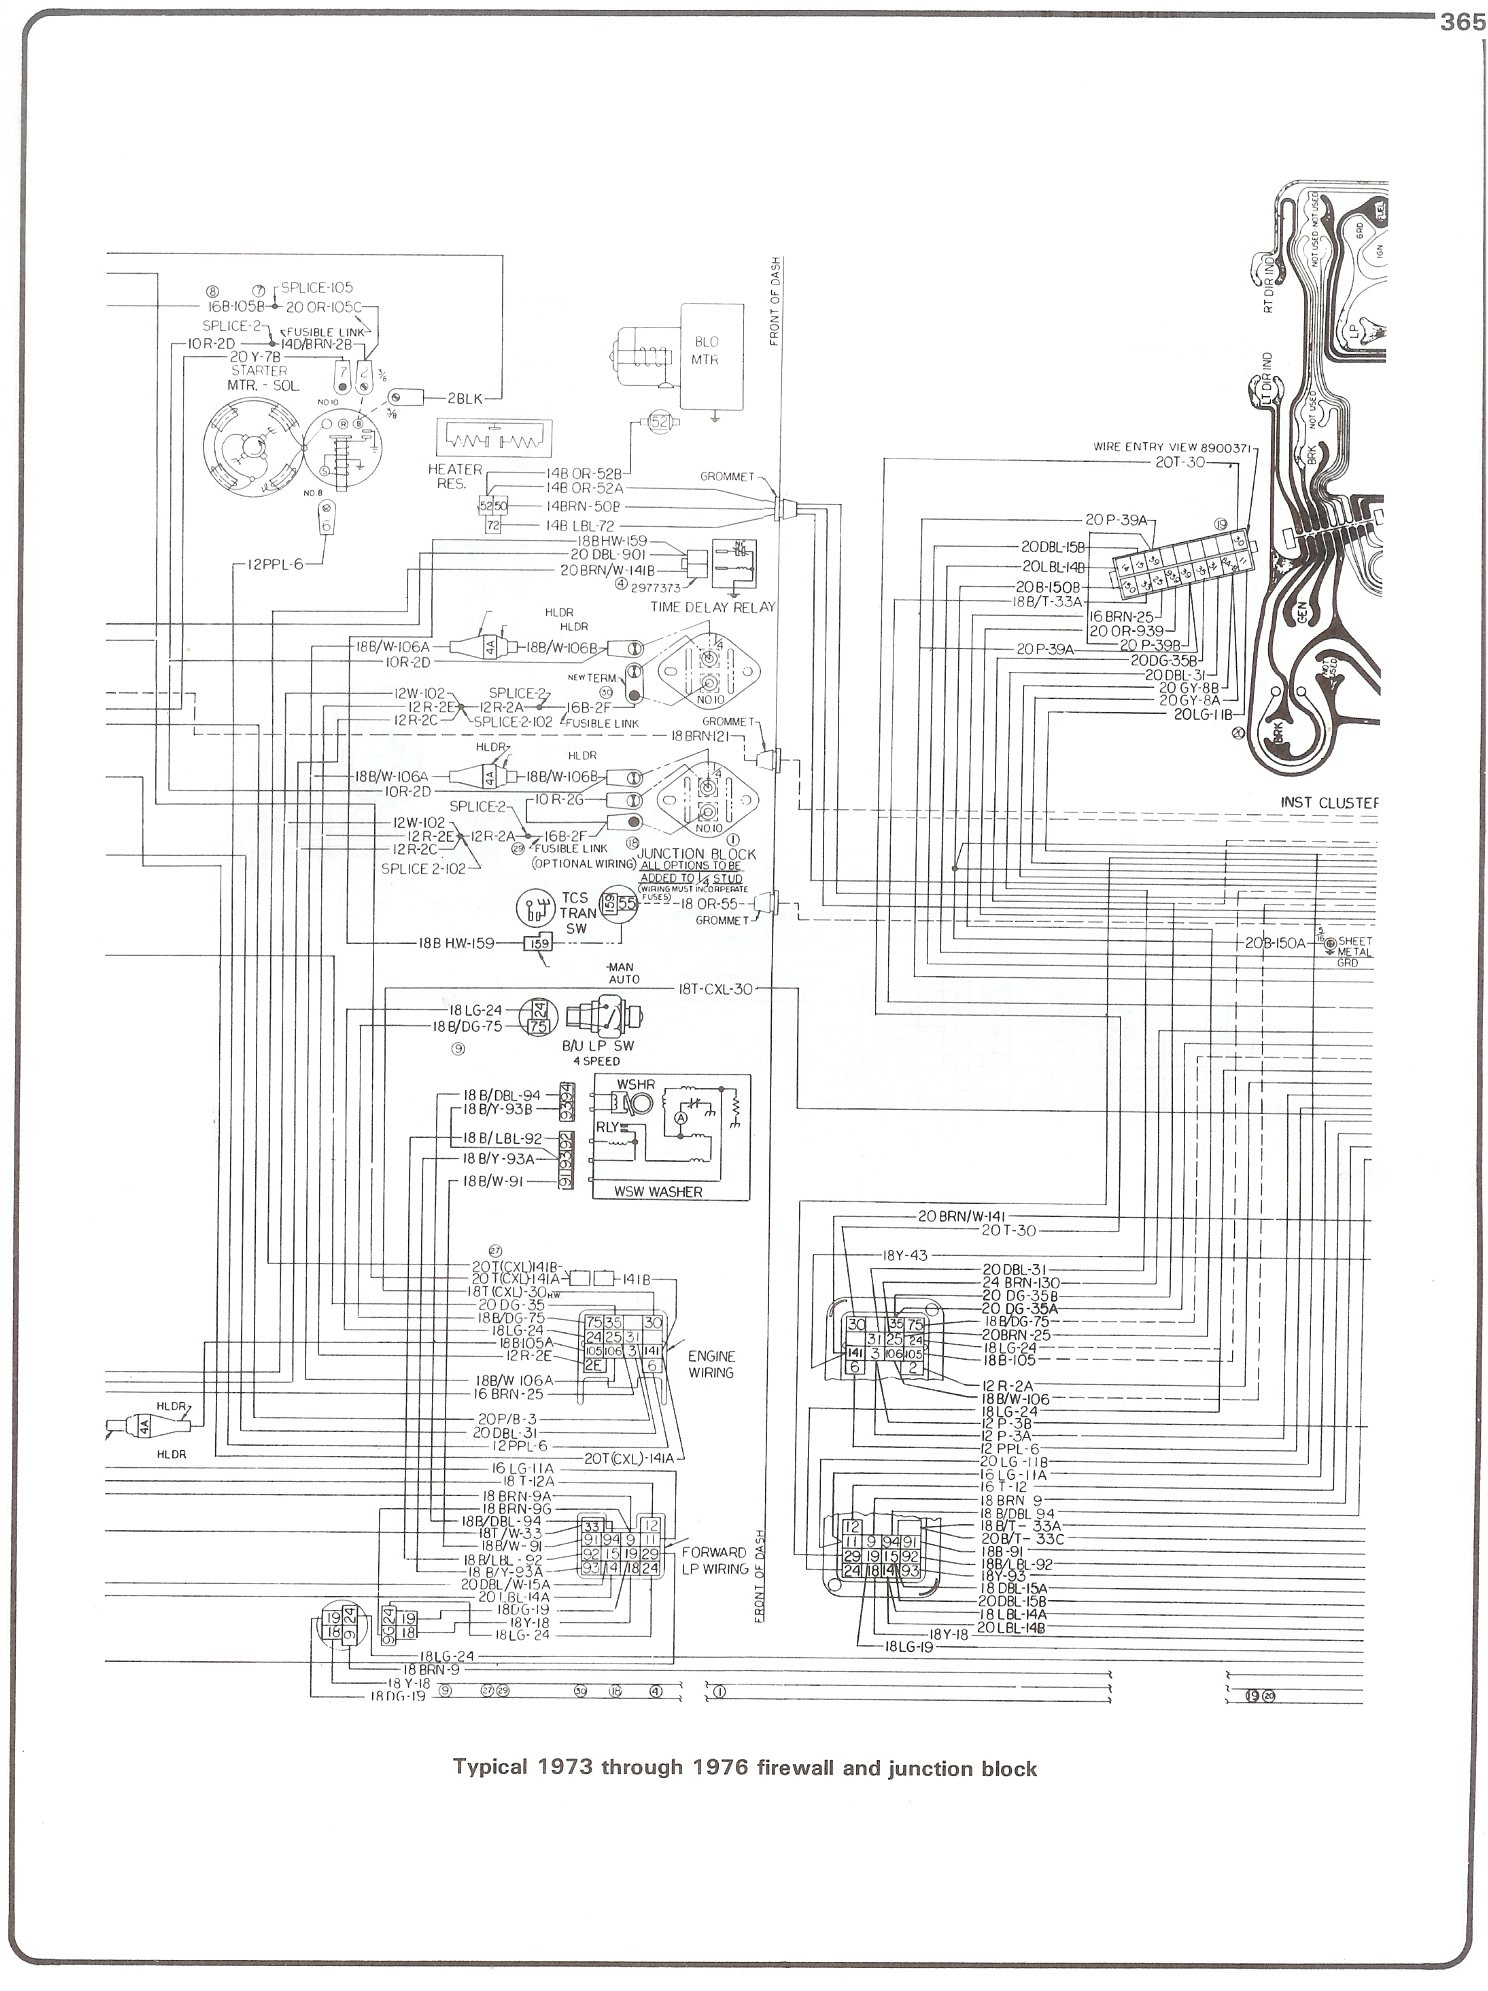 73 76_firewall_junct complete 73 87 wiring diagrams  at fashall.co